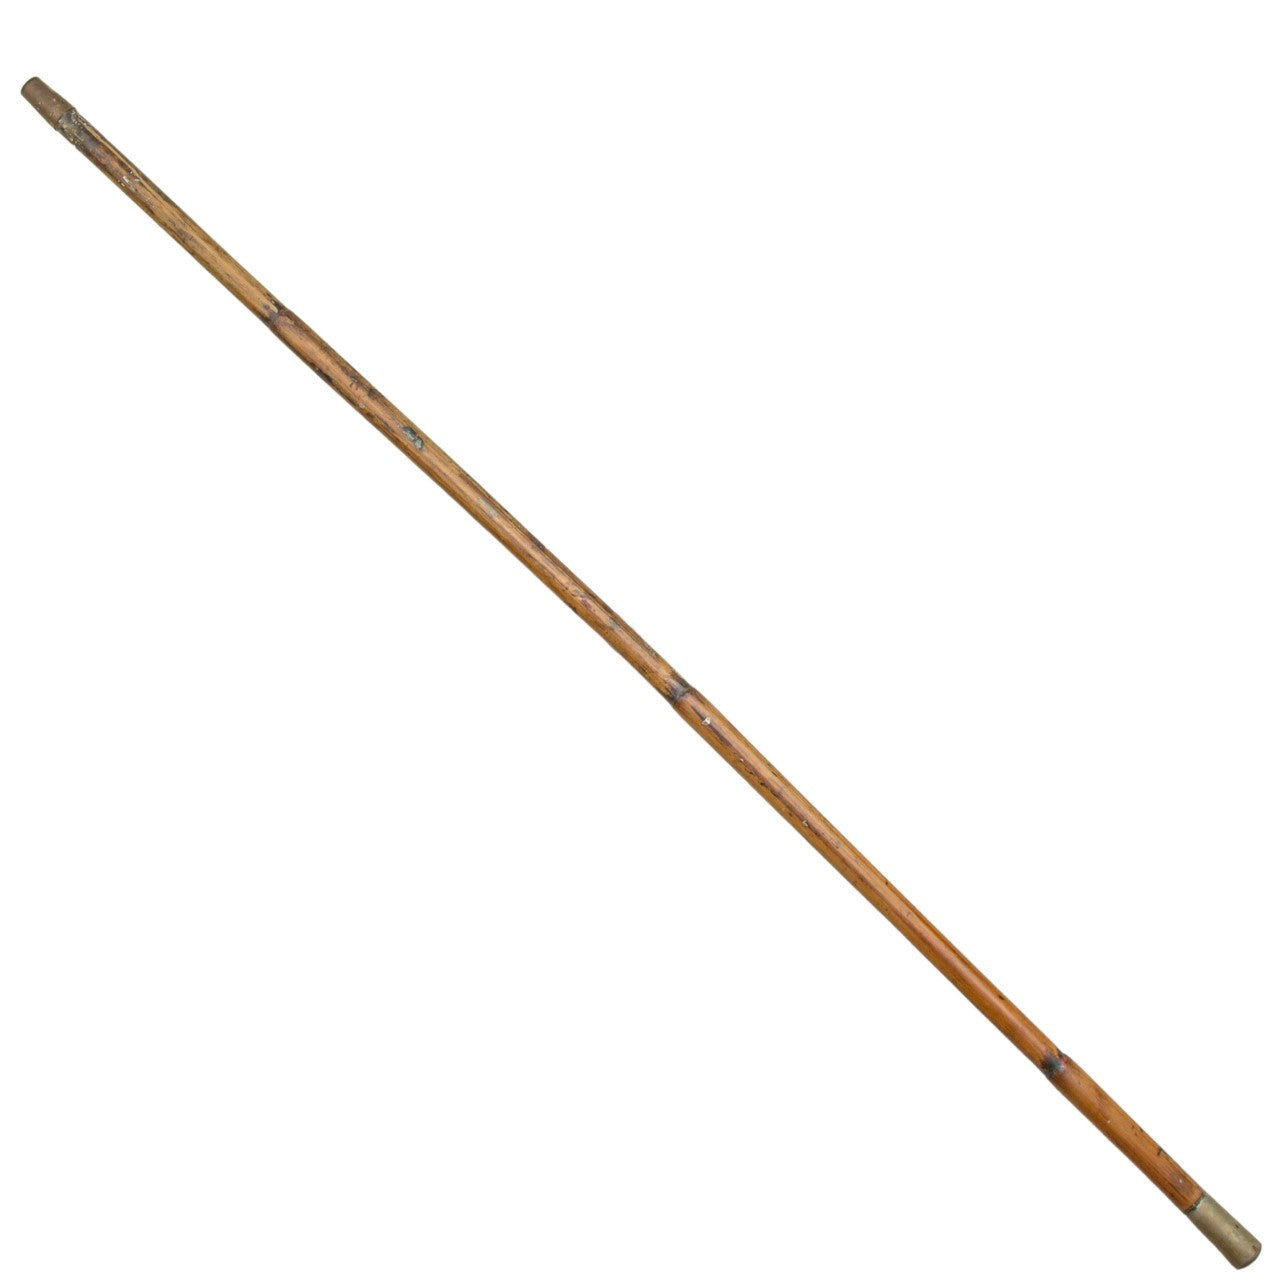 WW2 Bamboo Swagger Stick